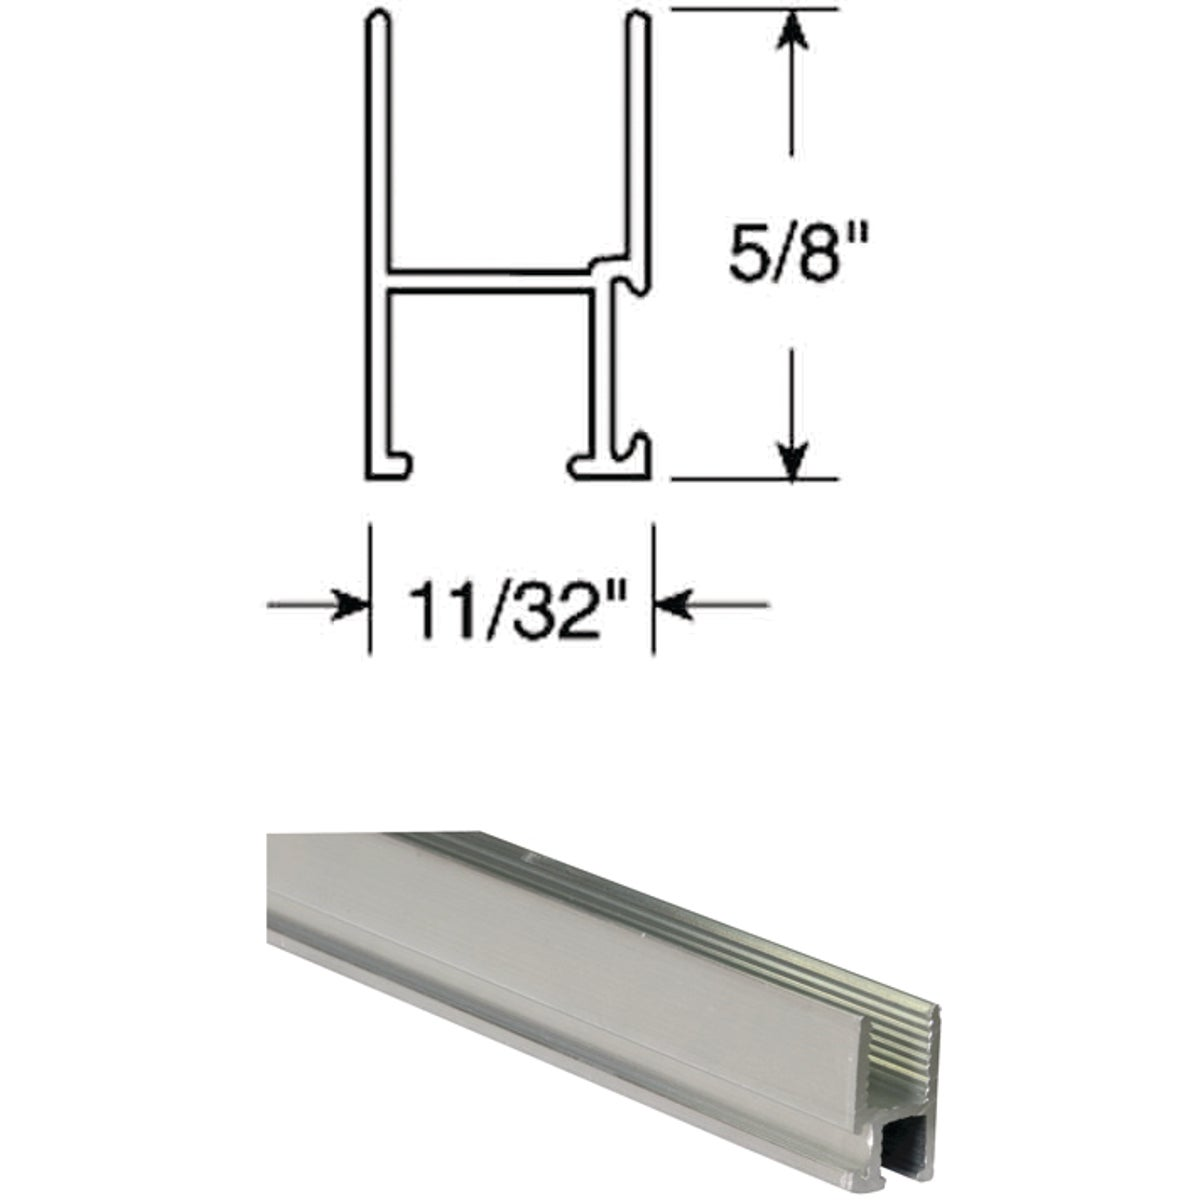 11/32X5/8 WINDOW FRAME - PL14189 by Prime Line Products